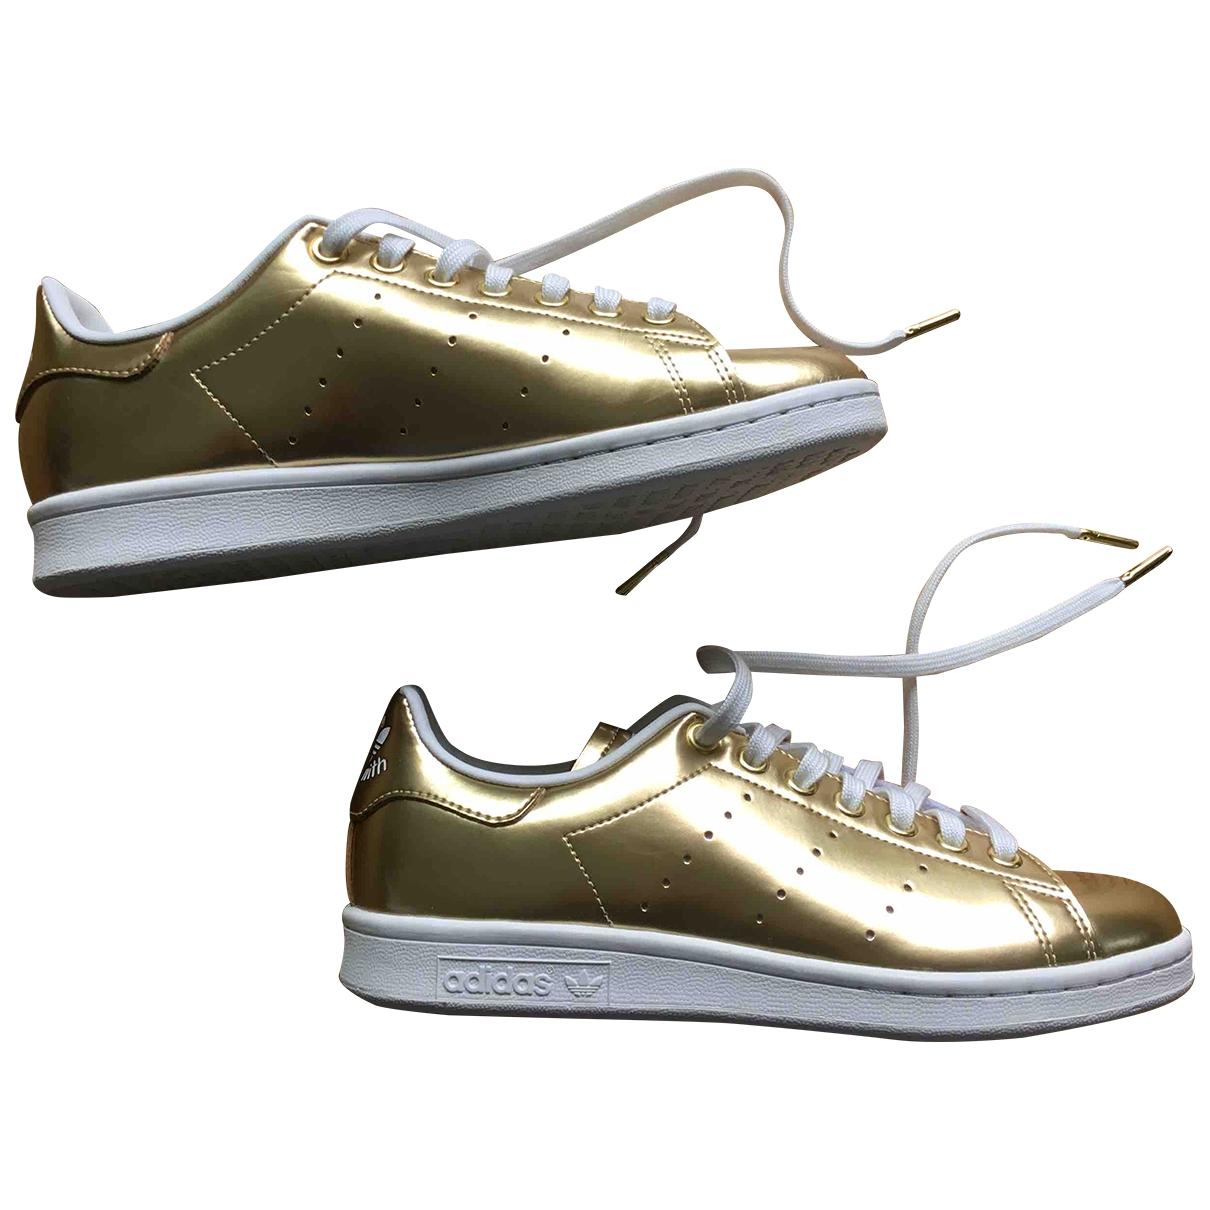 Adidas - Baskets Stan Smith pour femme en cuir - dore